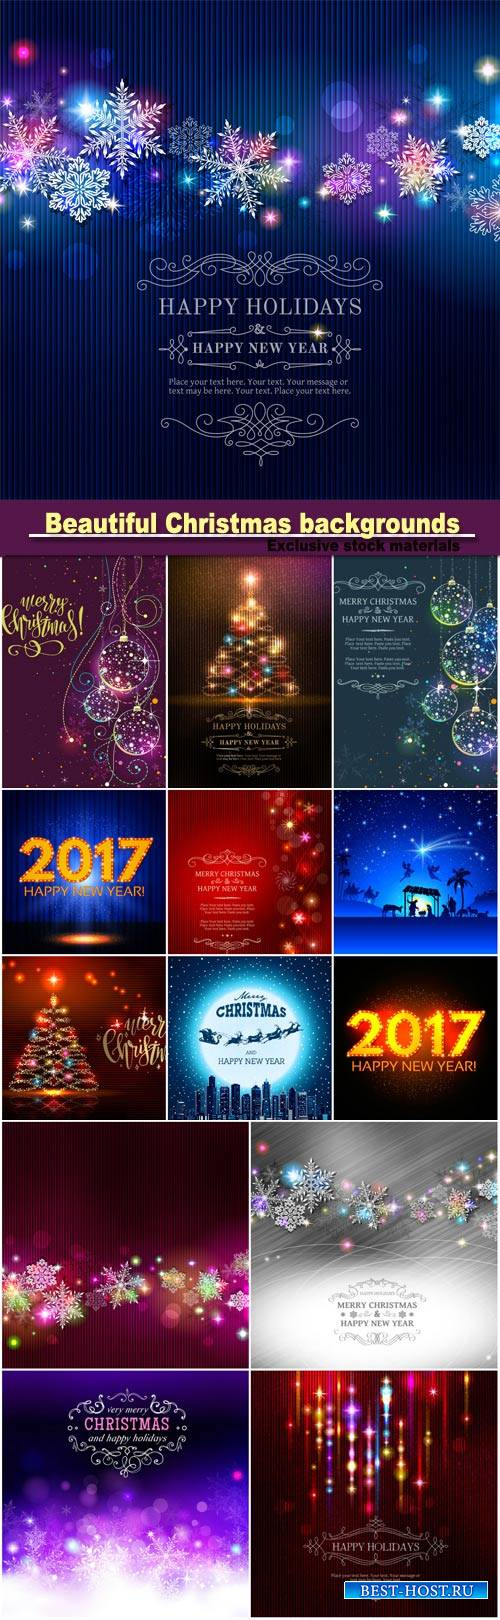 Christmas backgrounds, sparkling elements, snowflakes